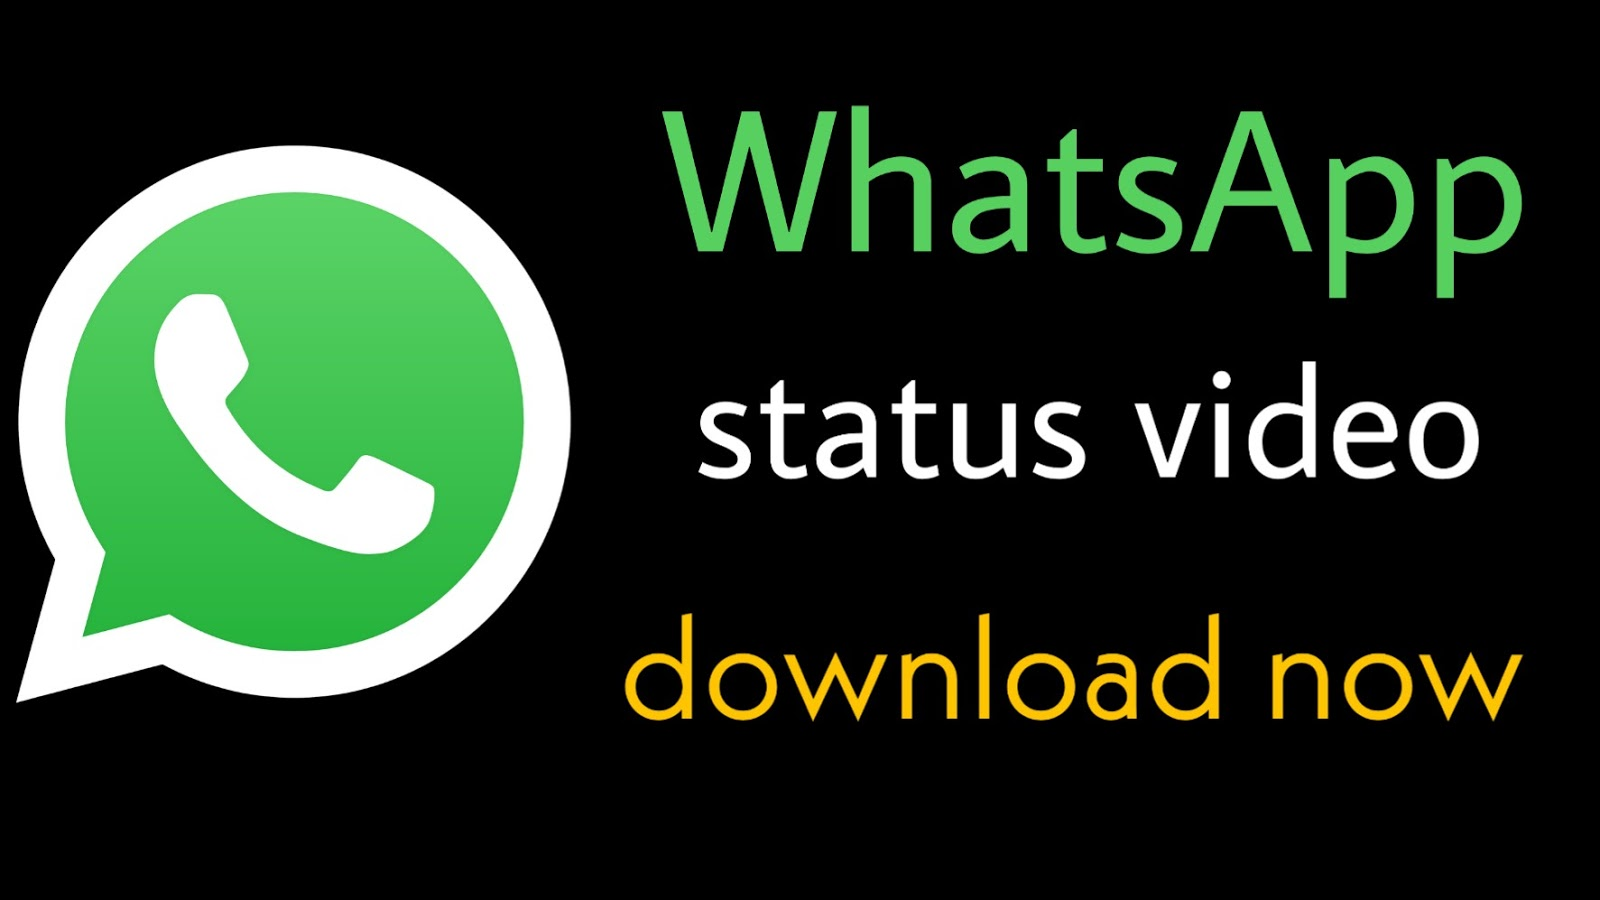 Best Whatsapp status video | Download now from this site